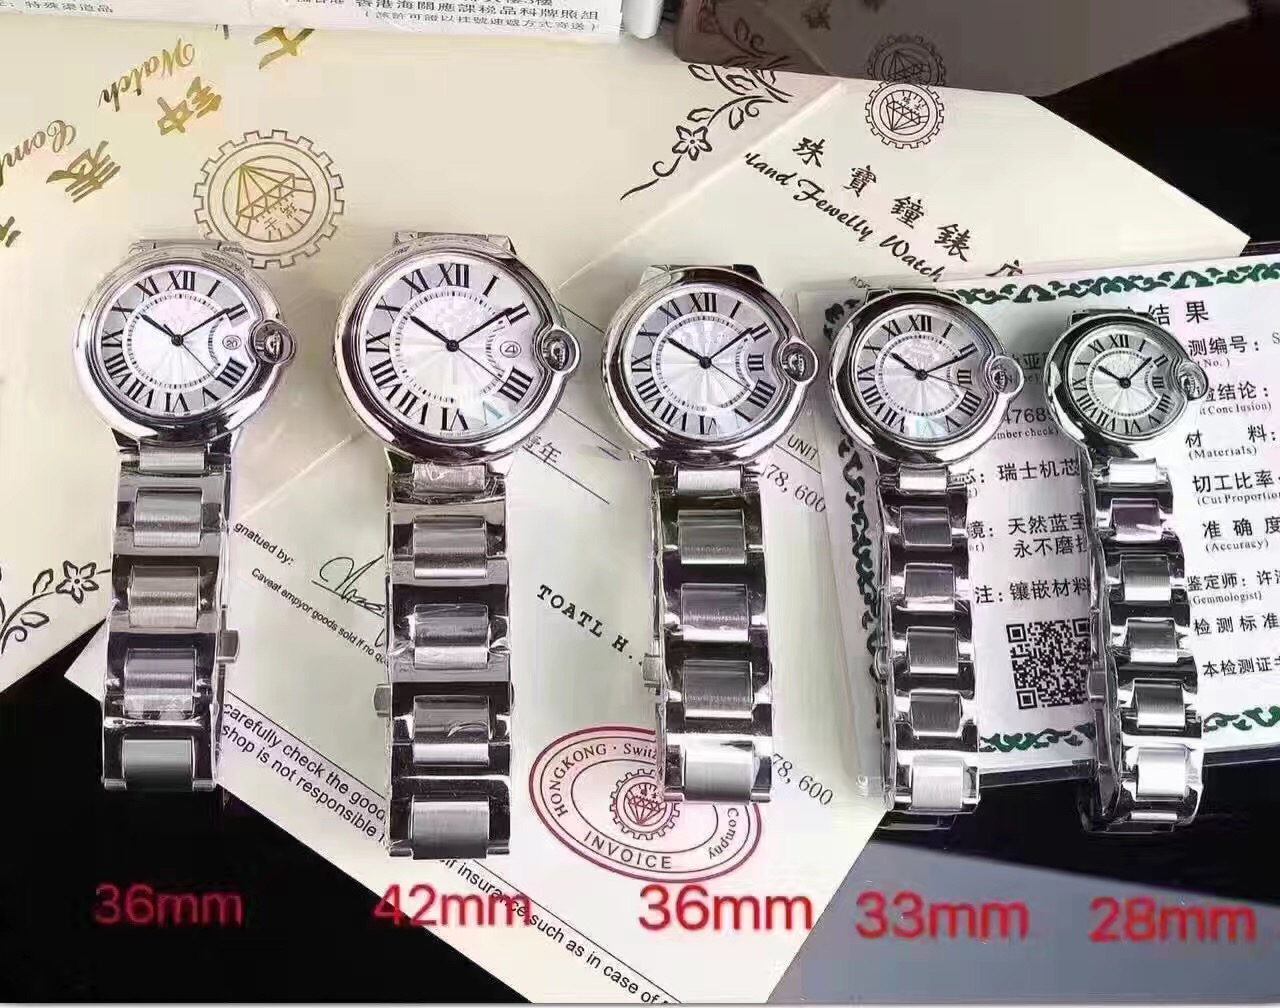 Luxury Brand New Men 36mm Women Sapphire Full Silver Stainless Steel Japan Quartz Sports Classic Round Watches With Date AAA+Luxury Brand New Men 36mm Women Sapphire Full Silver Stainless Steel Japan Quartz Sports Classic Round Watches With Date AAA+